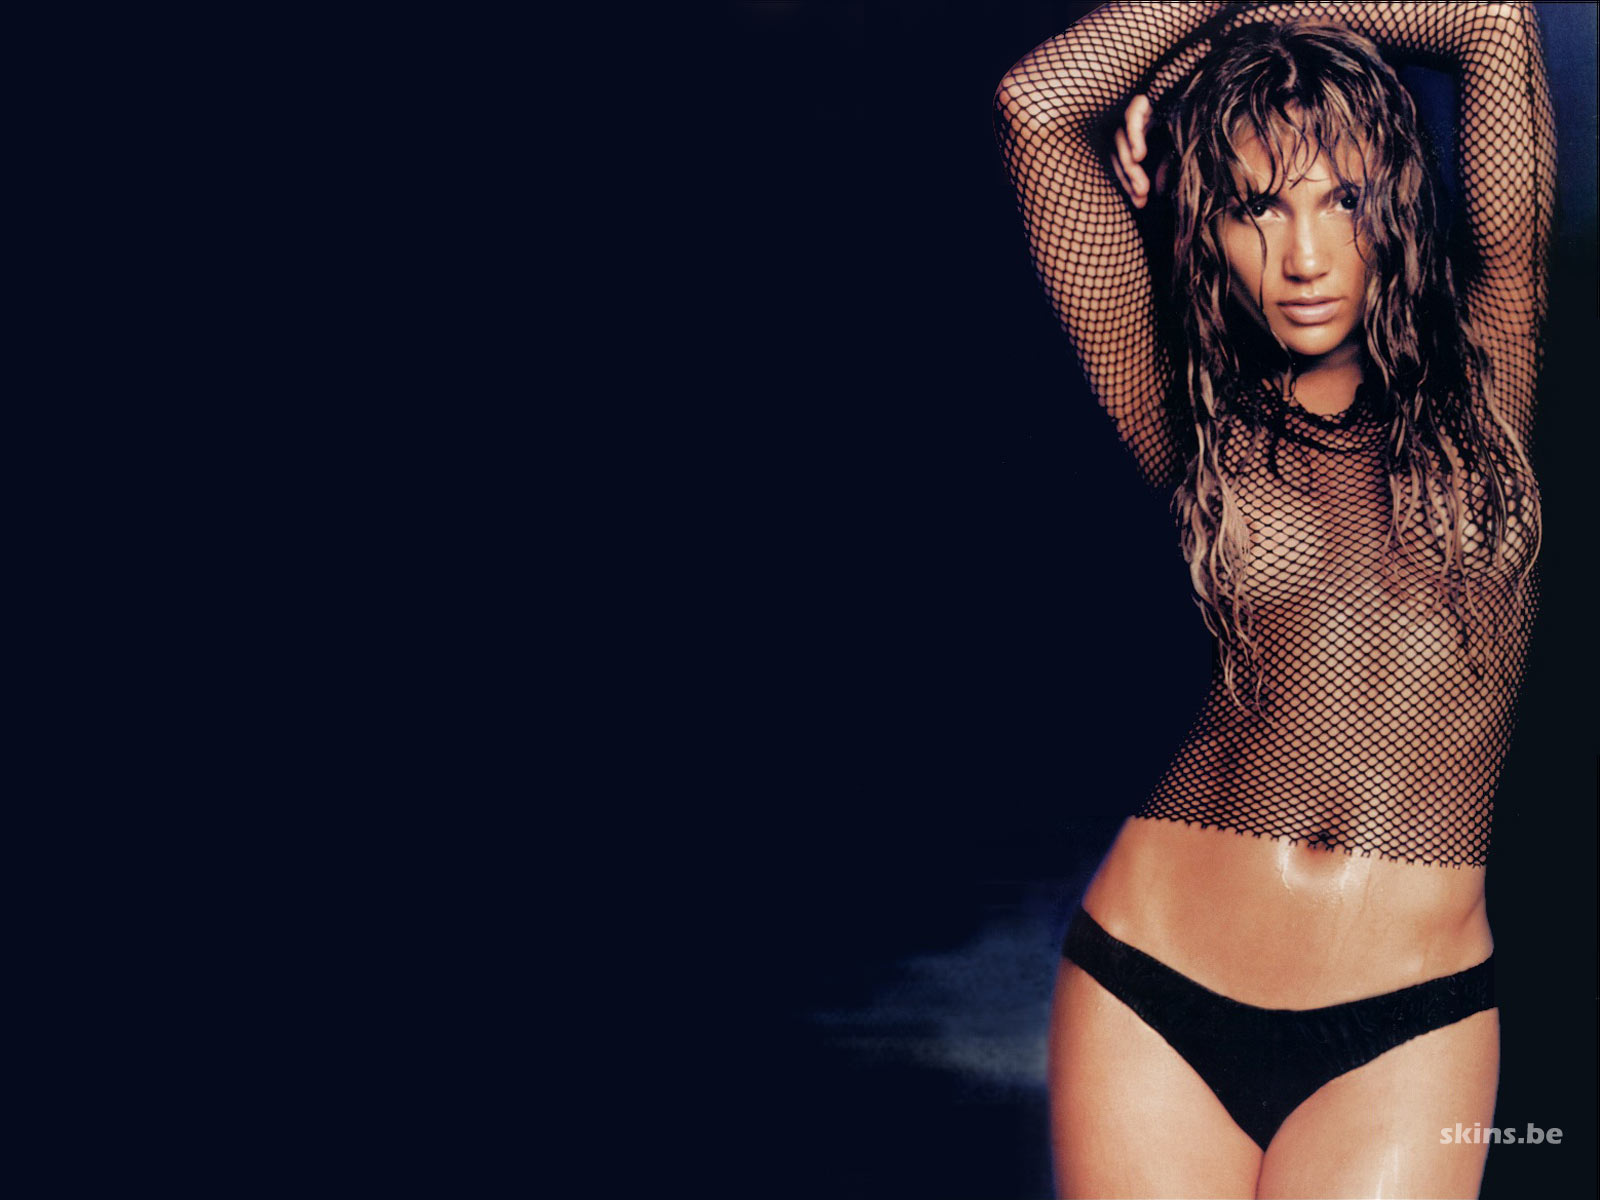 jlo naked sexy hottie